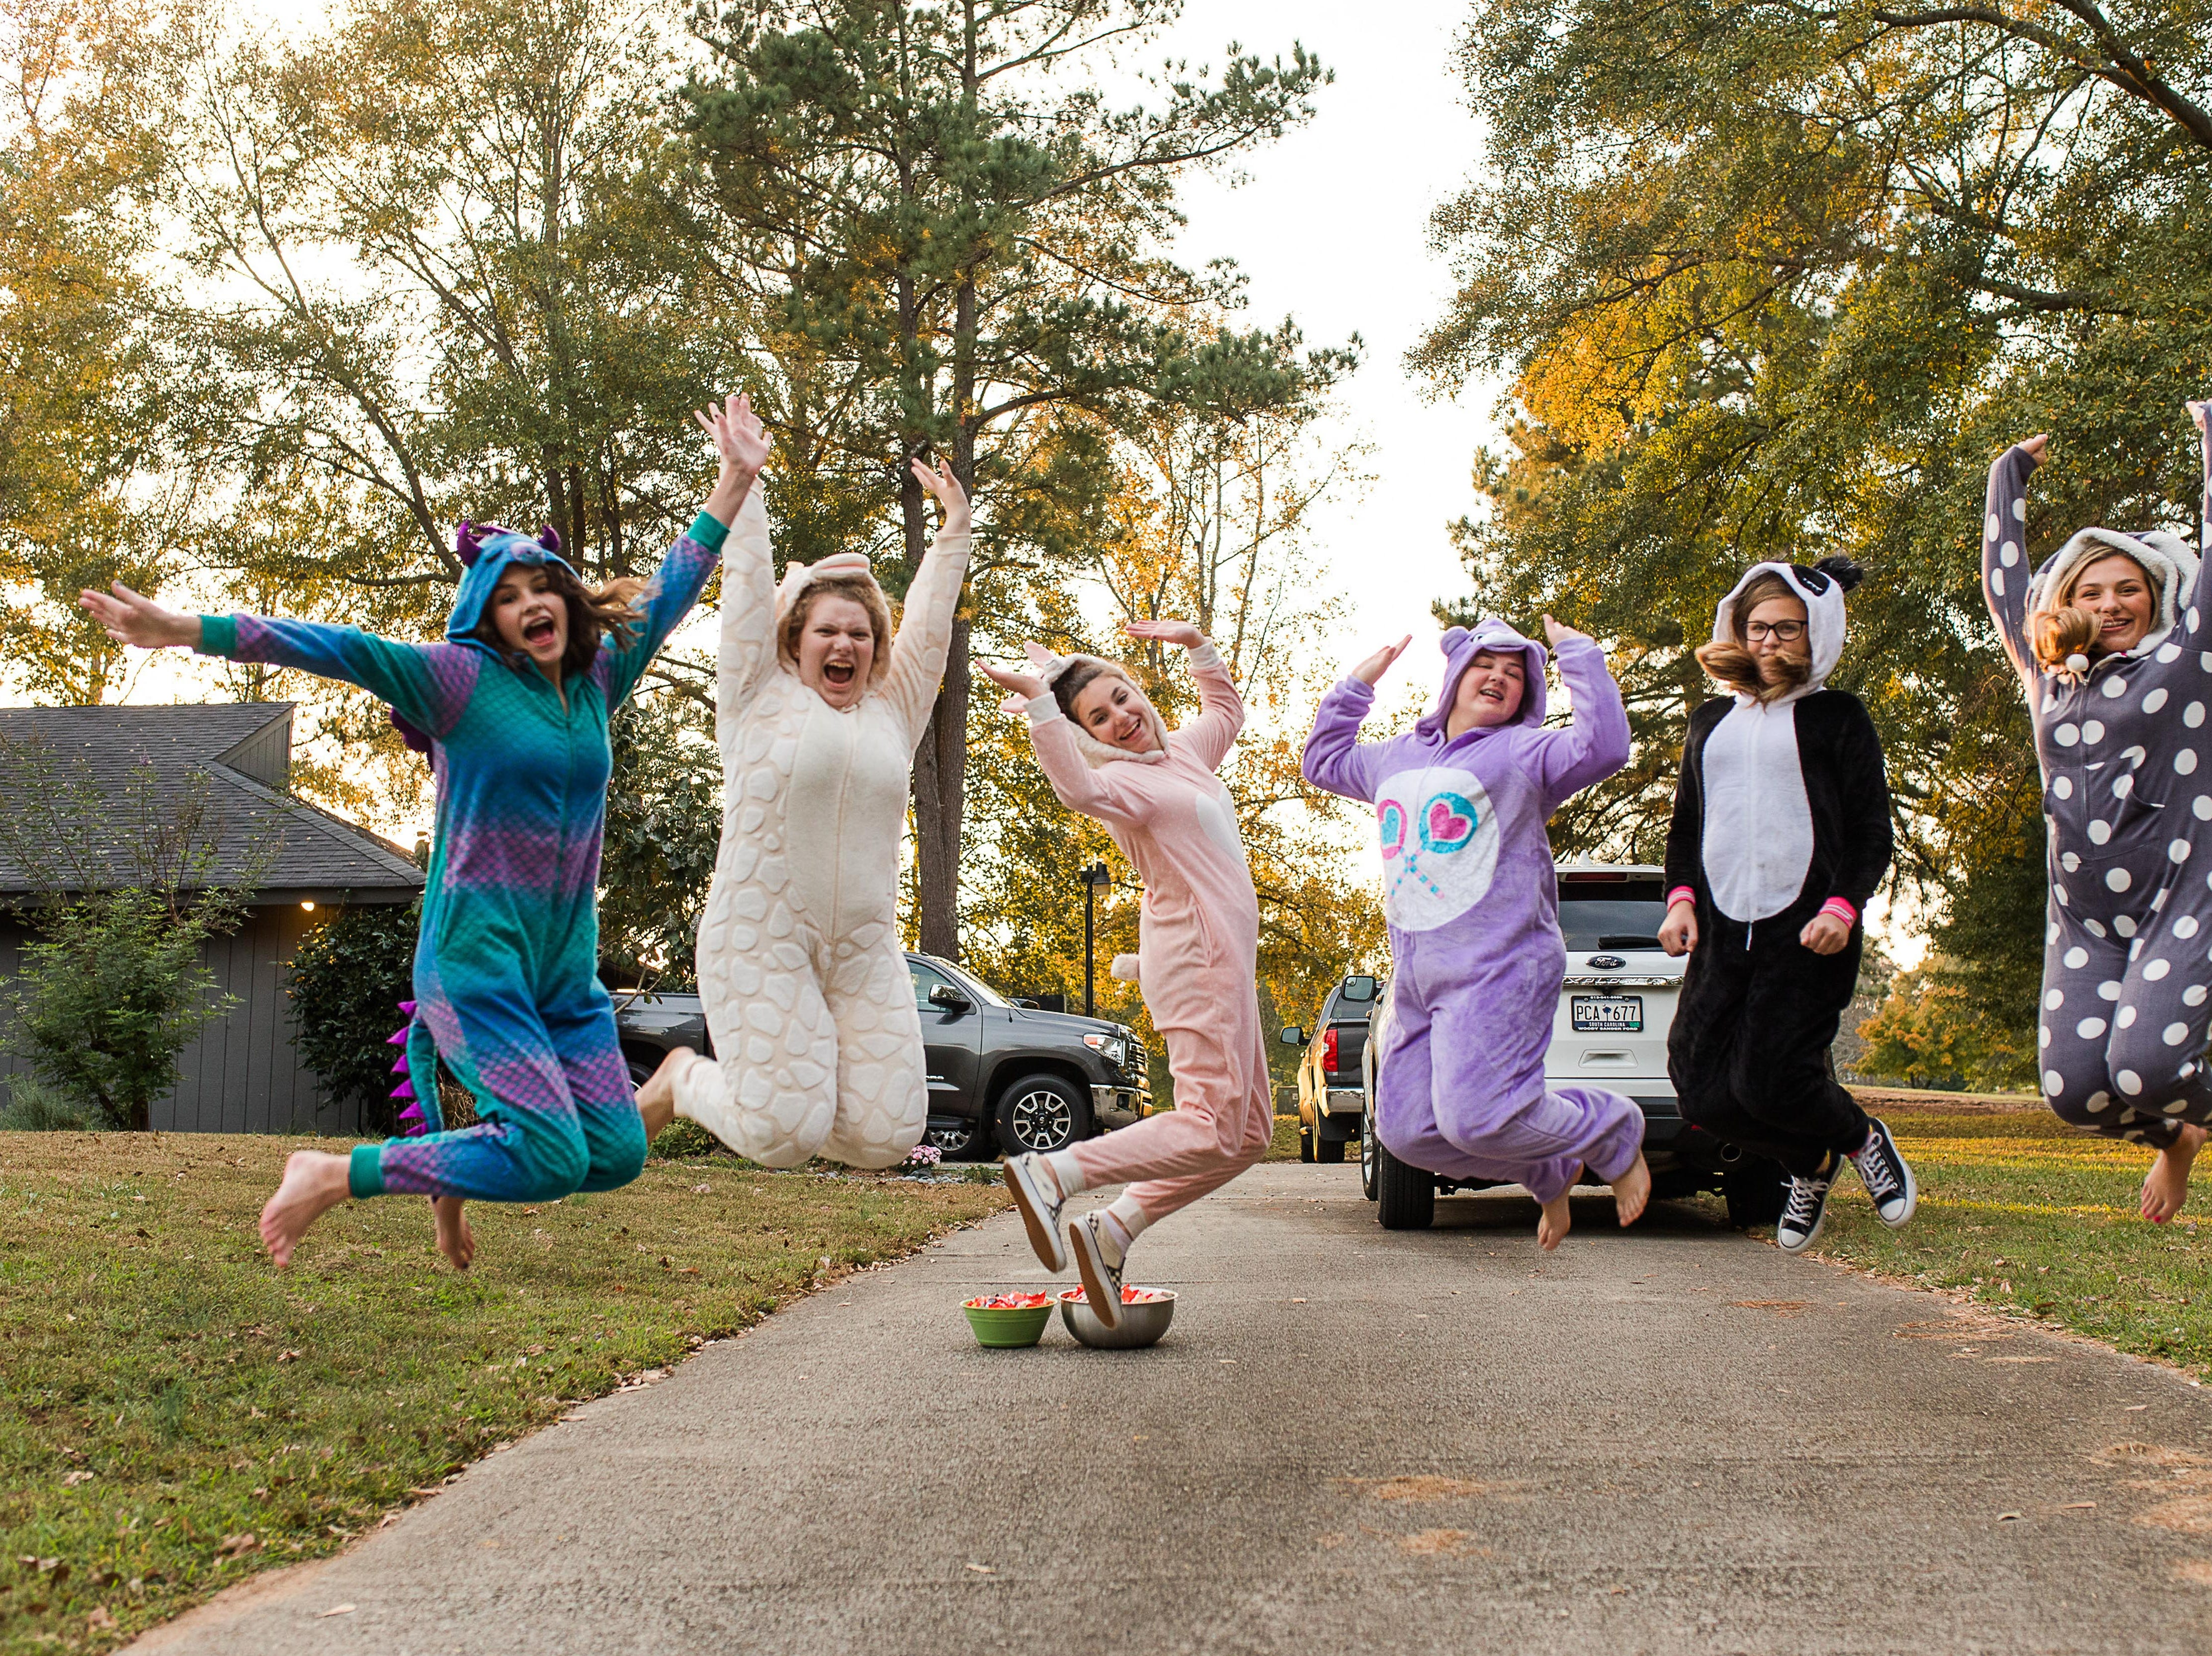 Ella Glenn, Caroline Norris, Molly Sakovich, Cara Flemning, Channing Owens, and Carson Davis  are excited for trick-or-treating in the Cobb's Glenn subdivision in Anderson Wednesday, October 31, 2018.